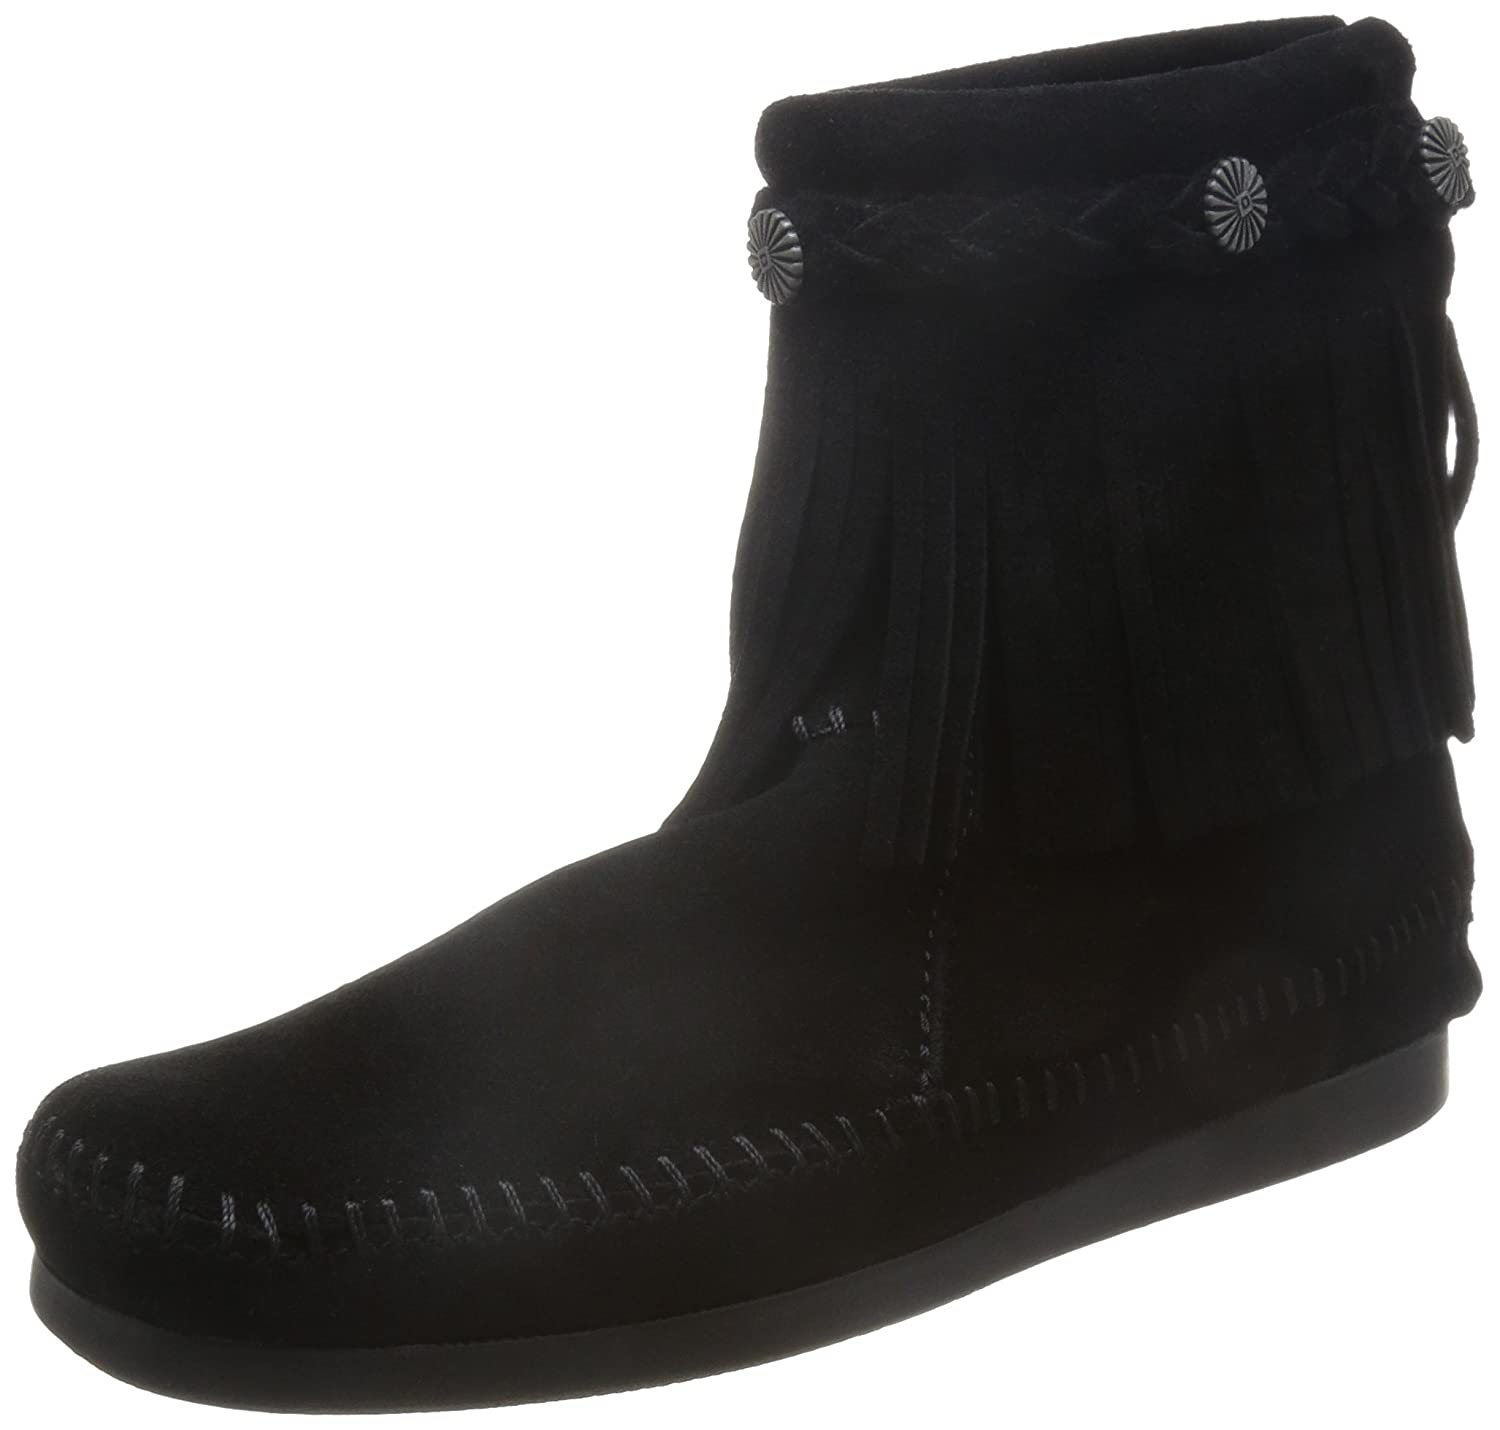 Minnetonka Hi Top Back Zip Boot 299 - Botas de ante para mujer41 EU|Negro (Black)